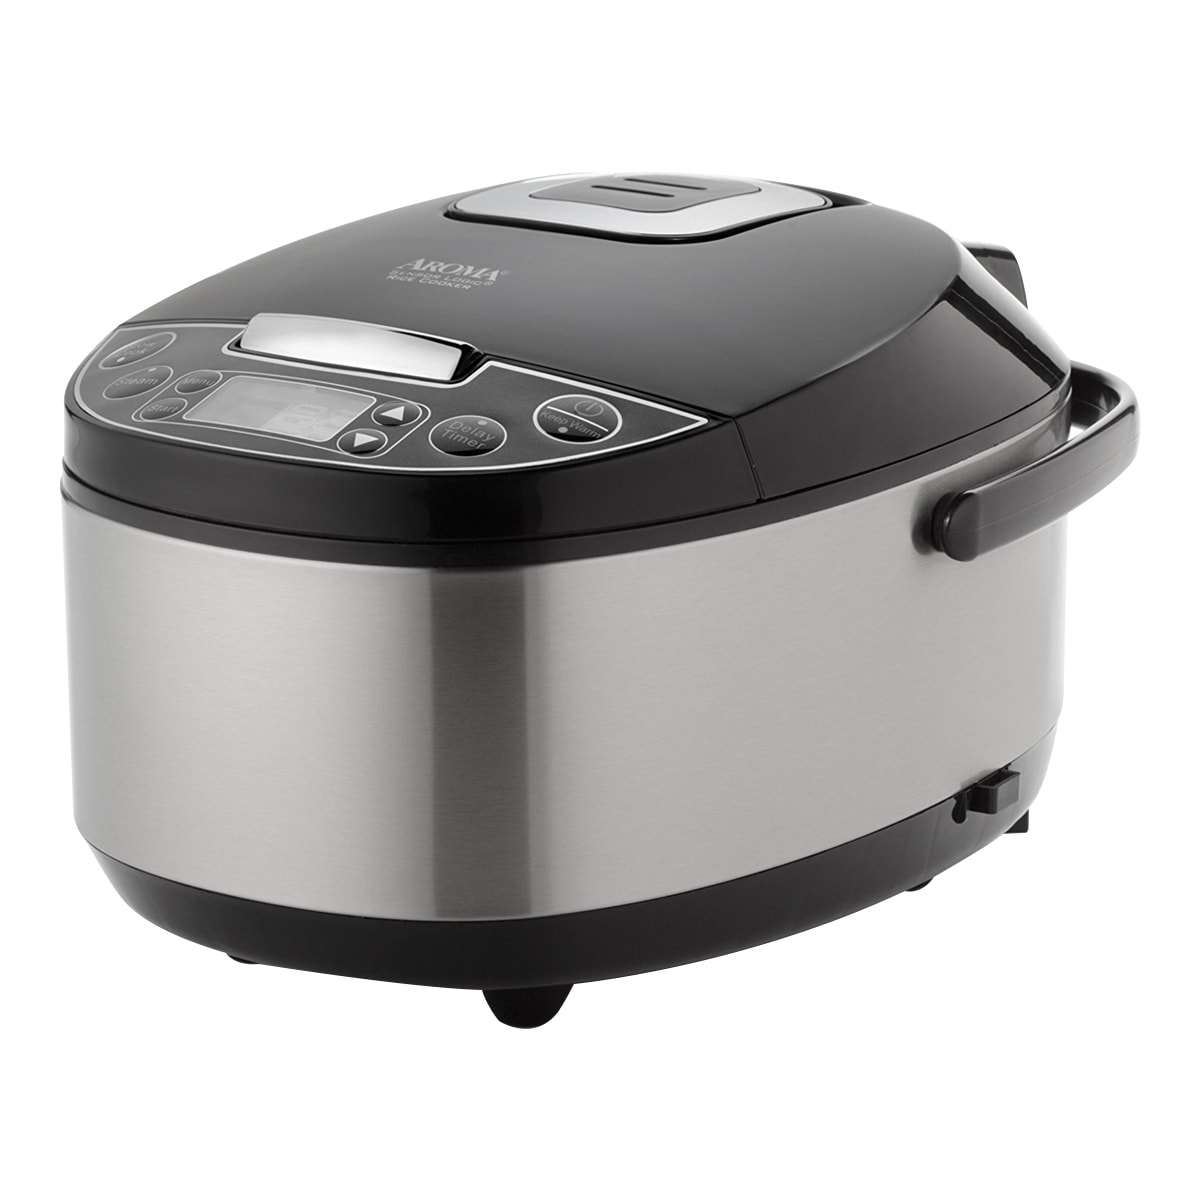 AROMA 12-Cup Digital Display Rice Cooker Slow Cooker and Food Steamer 14